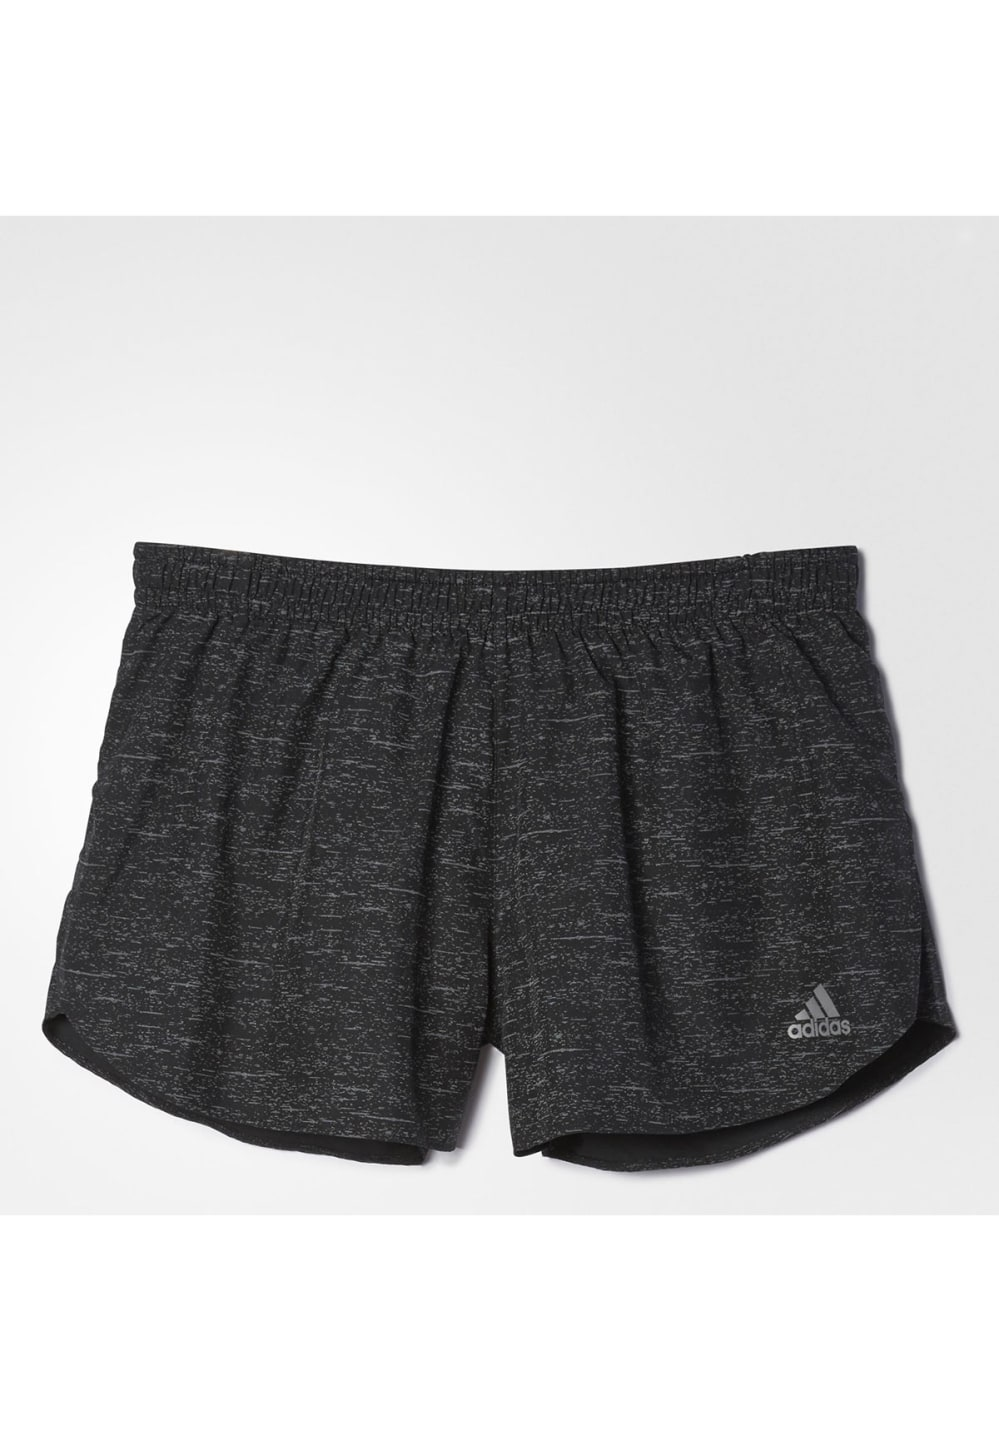 048c20e1a3935 adidas Supernova Split Short - Running trousers for Men - Grey